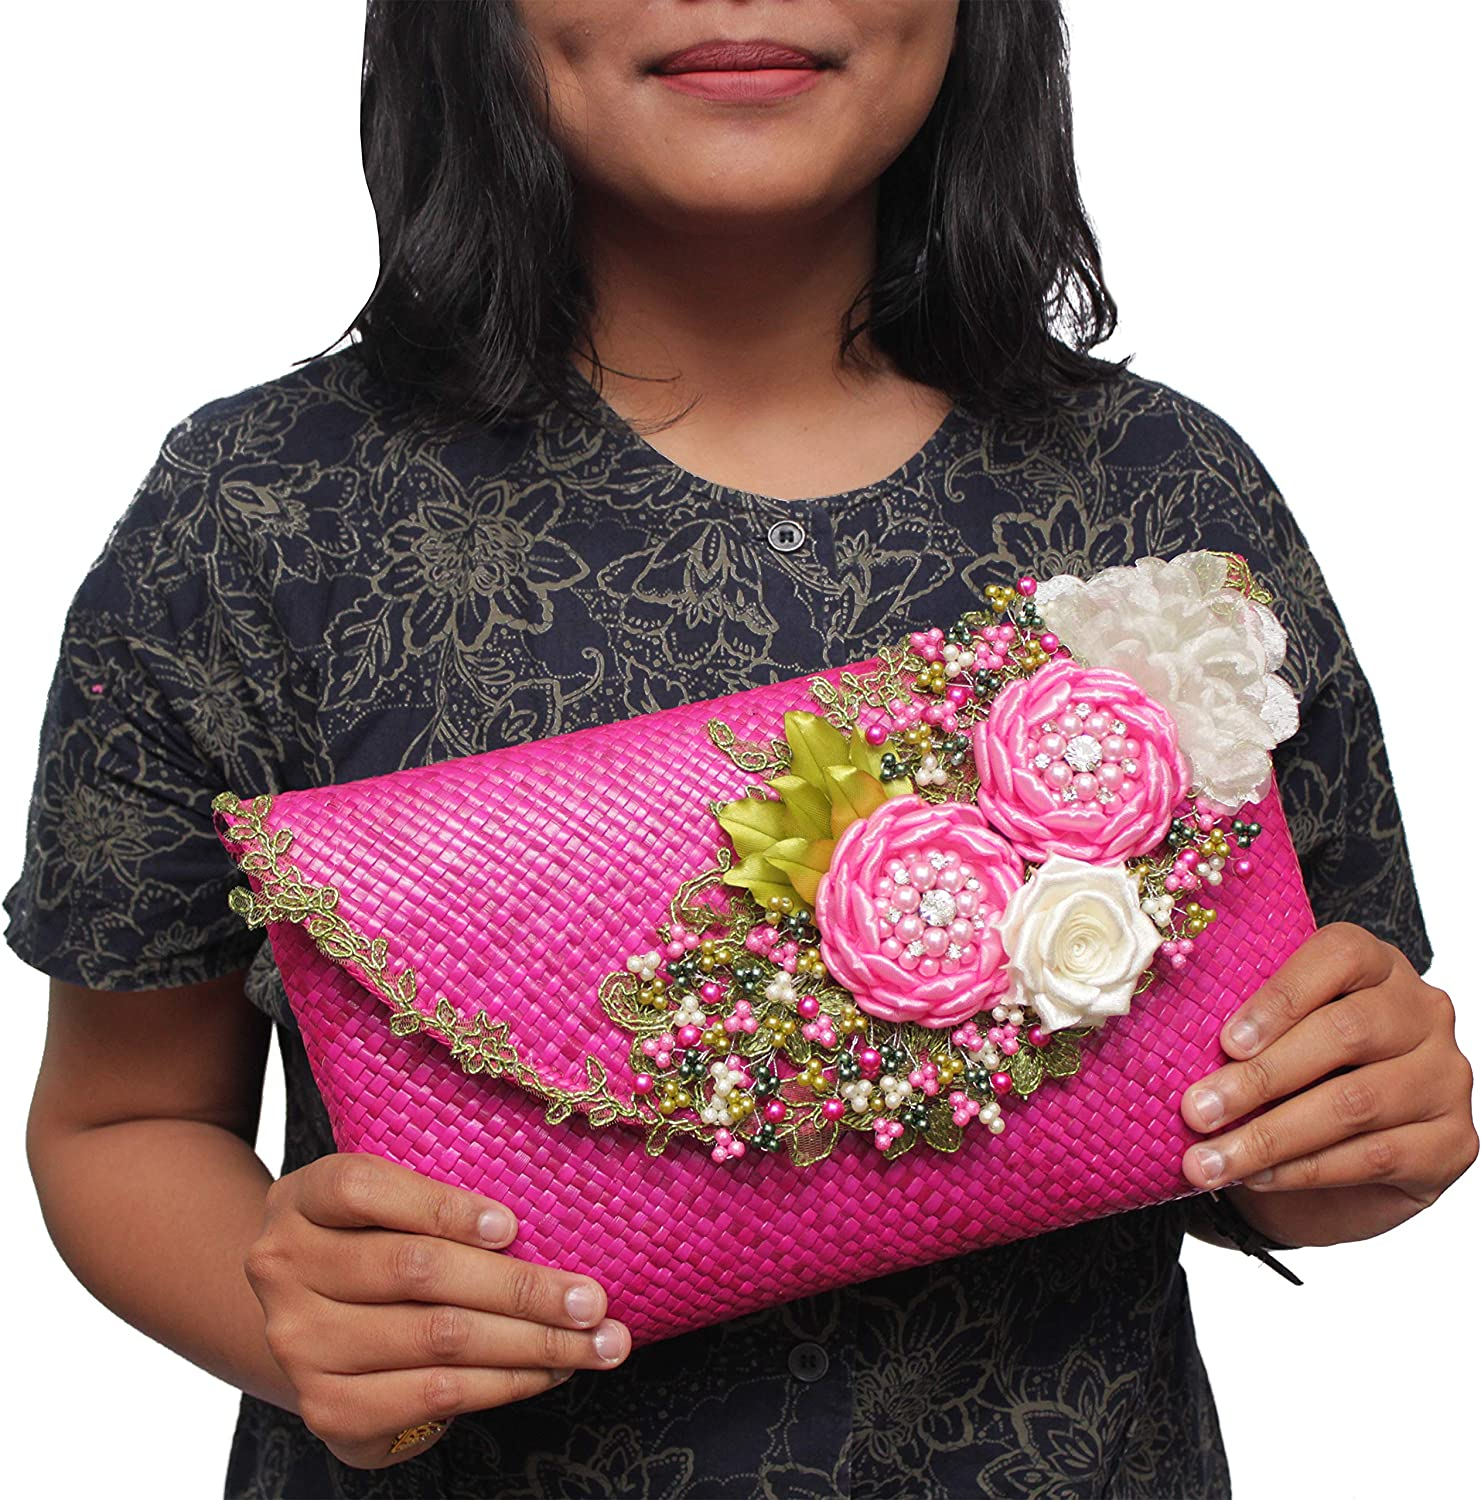 Details about  /Pandan Leaves Clutch-Bali Handmade Quilted Eco-Friendly /& Sustainable